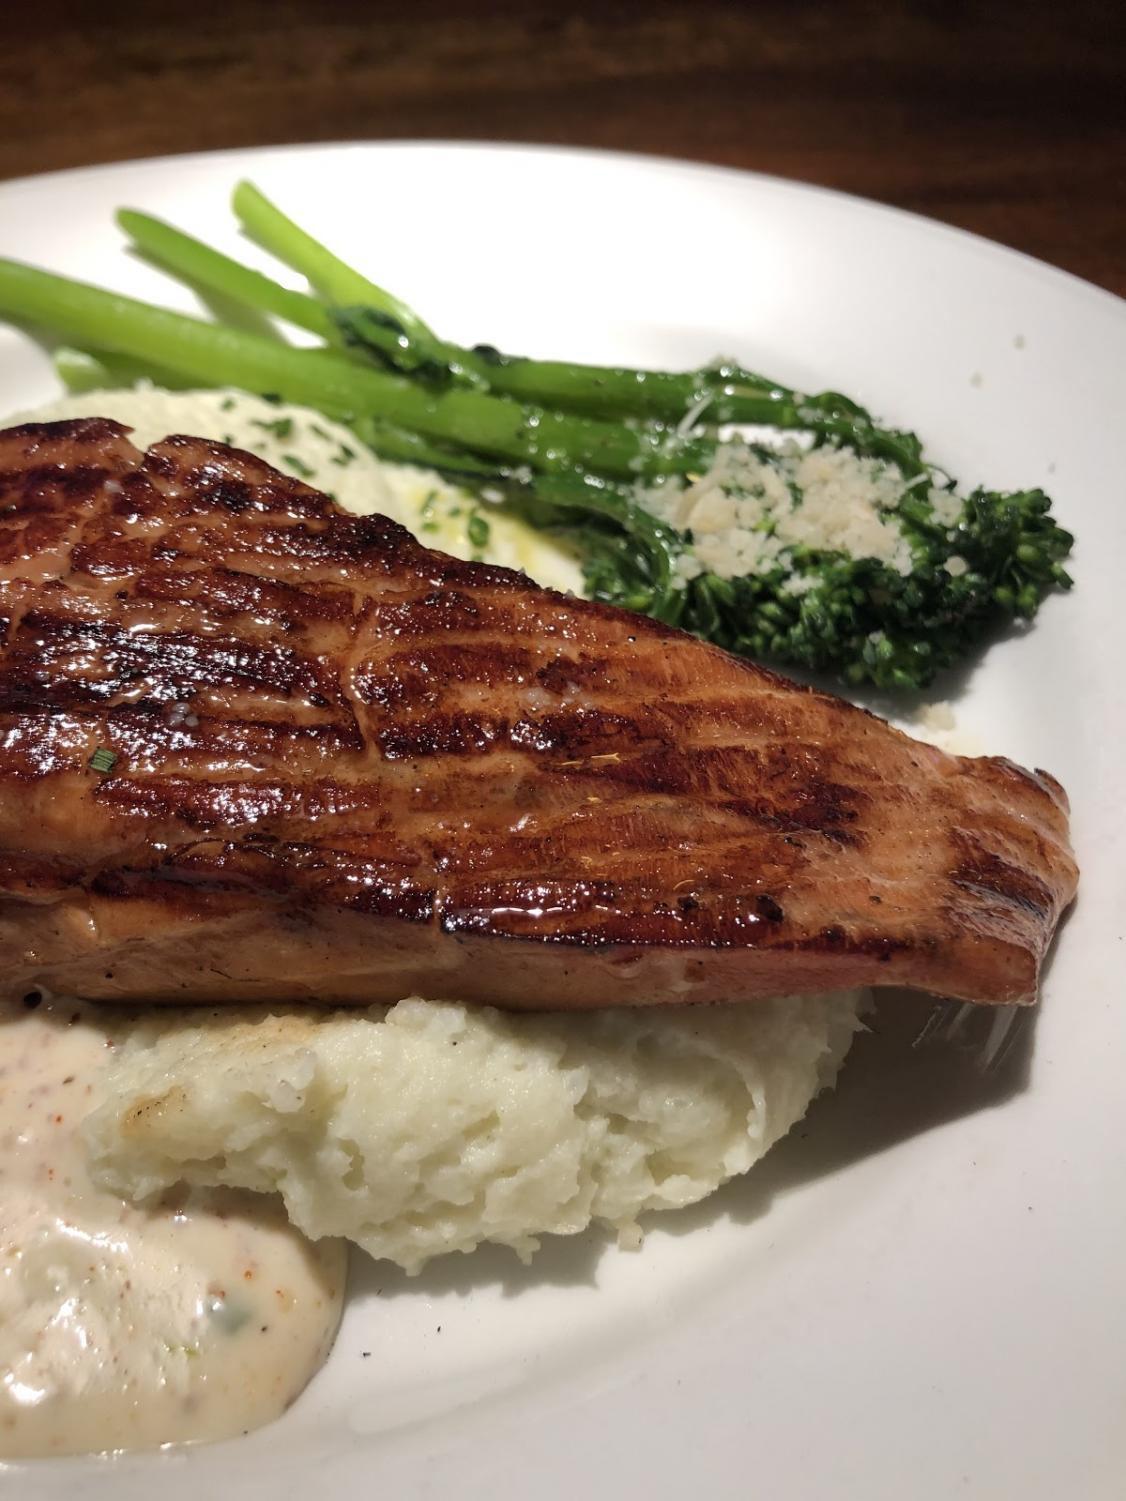 Photo of the Short Smoked Salmon Filet at Coastal Flats (in Fairfax), taken by Miranda Sandoval